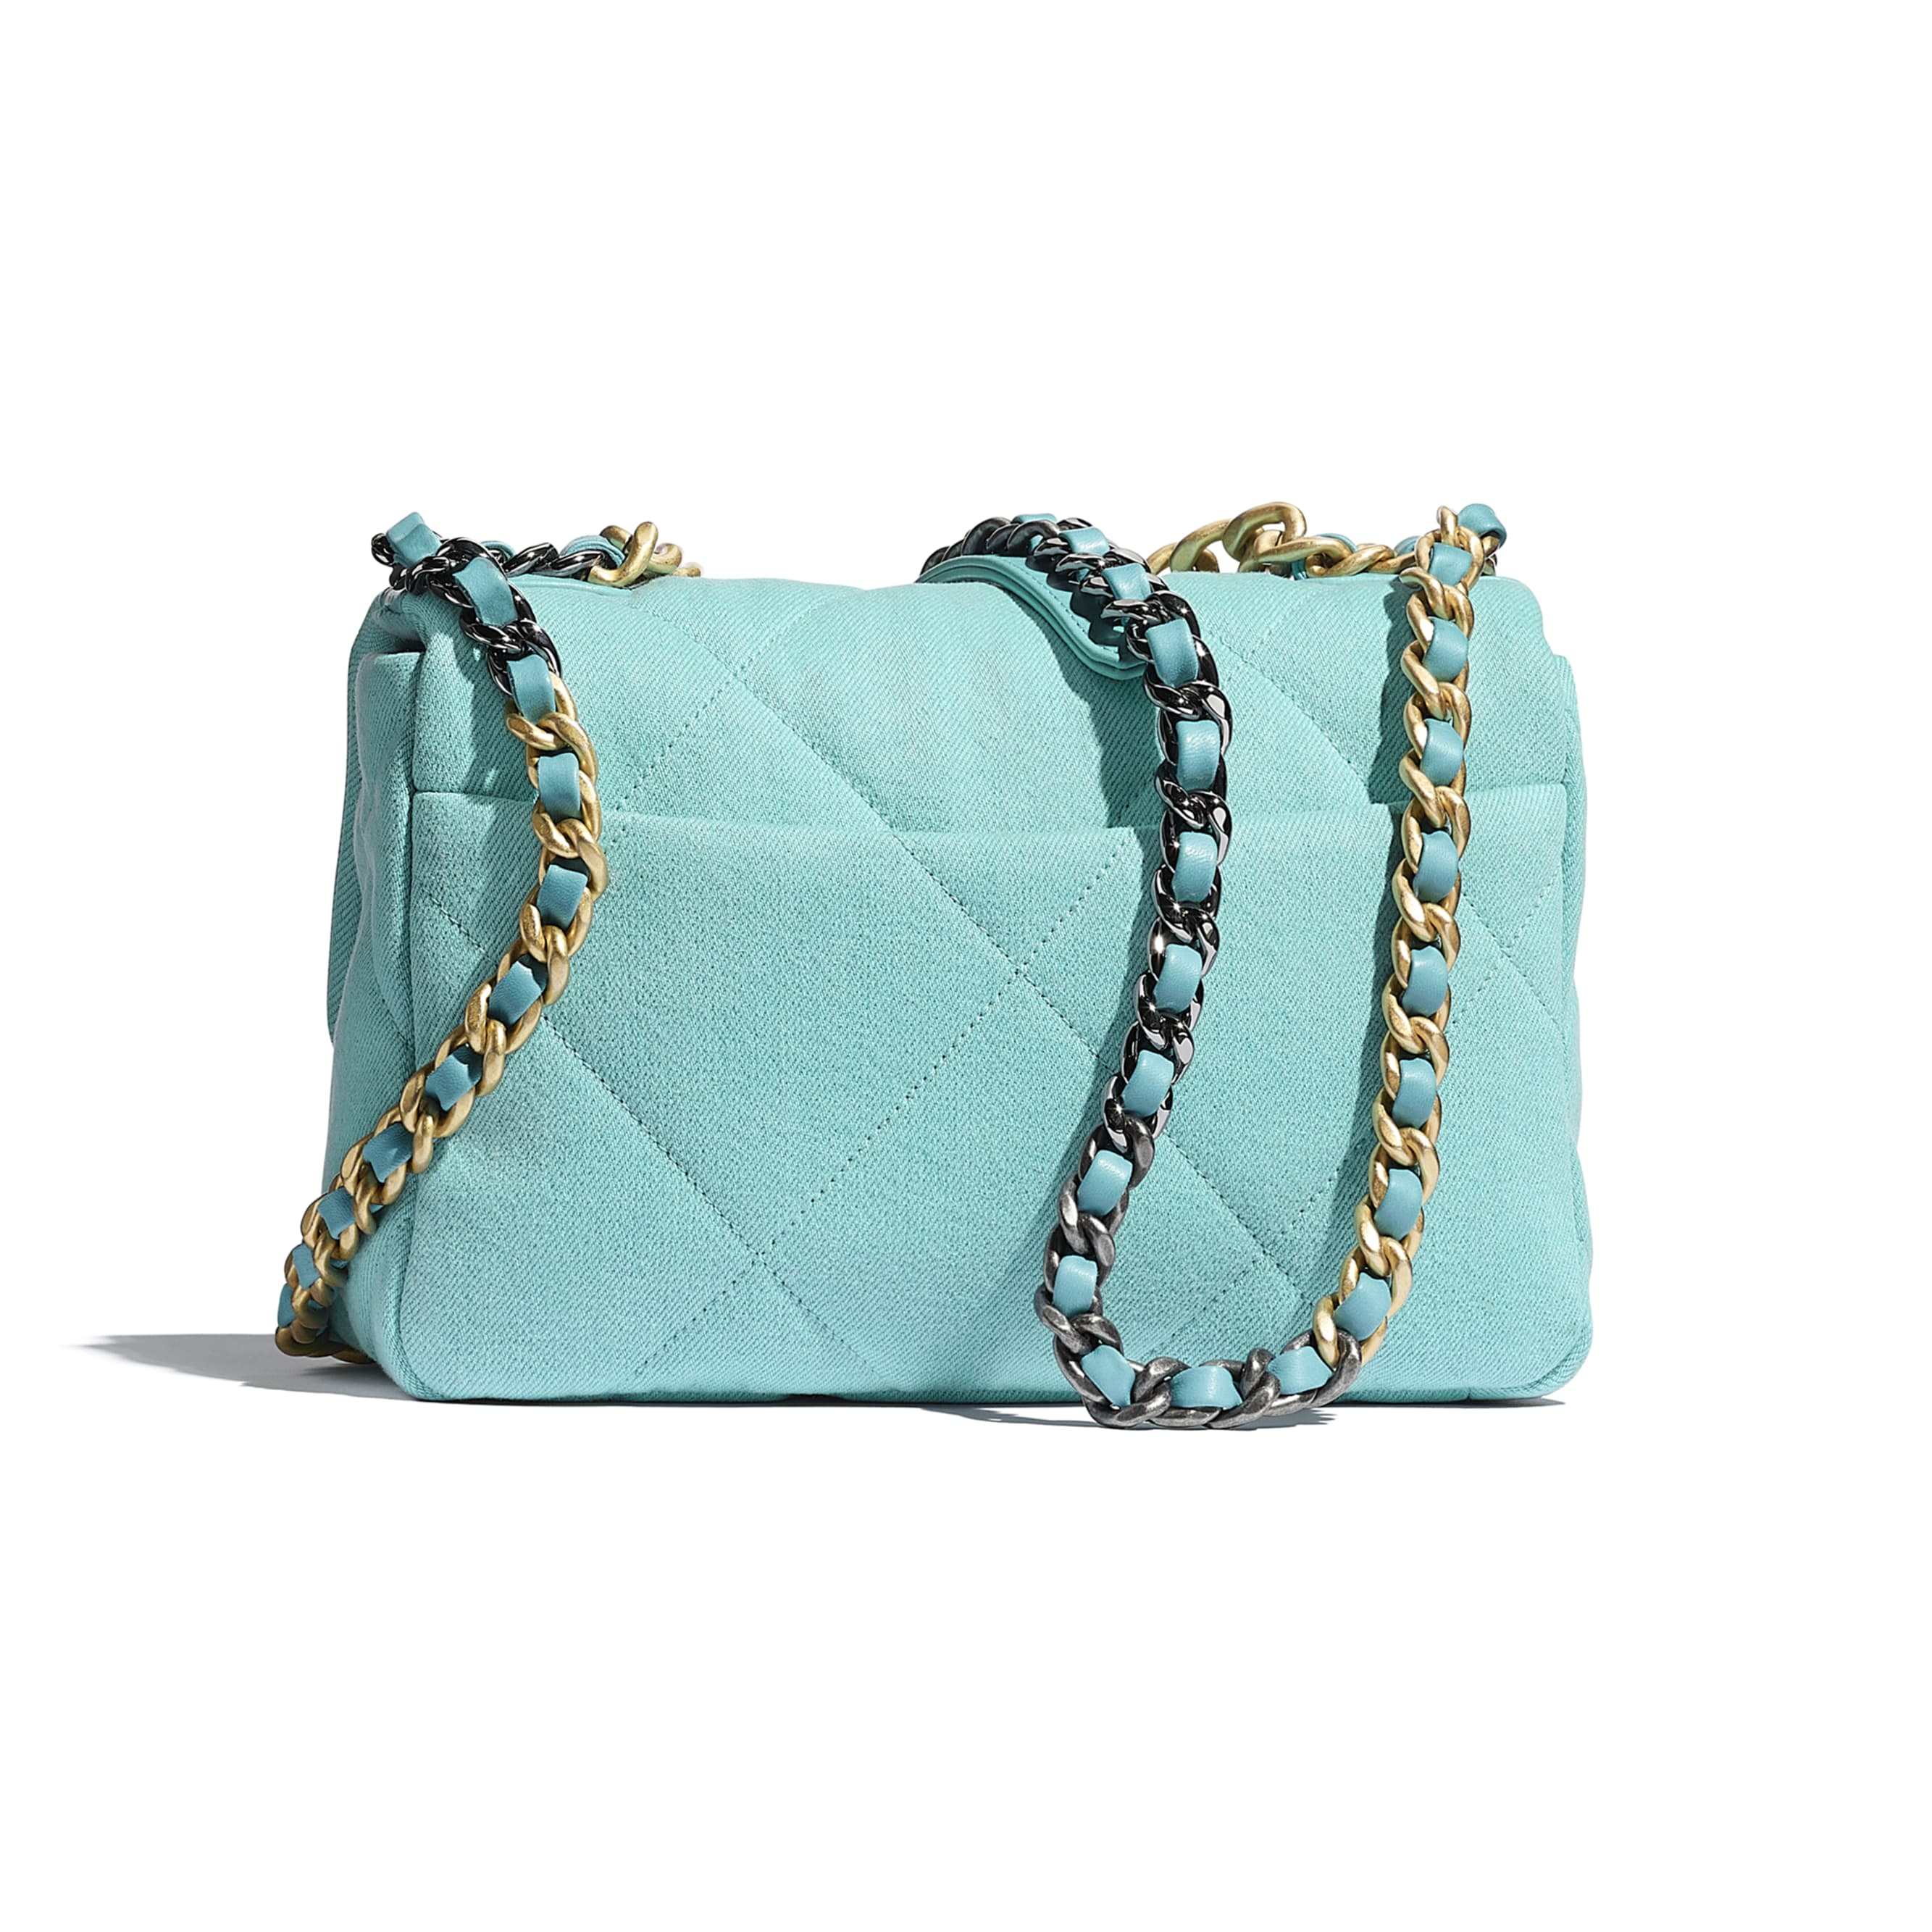 CHANEL 19 Flap Bag - Neon Blue - Denim, Calfskin, Gold-Tone, Silver-Tone & Ruthenium-Finish Metal - CHANEL - Alternative view - see standard sized version